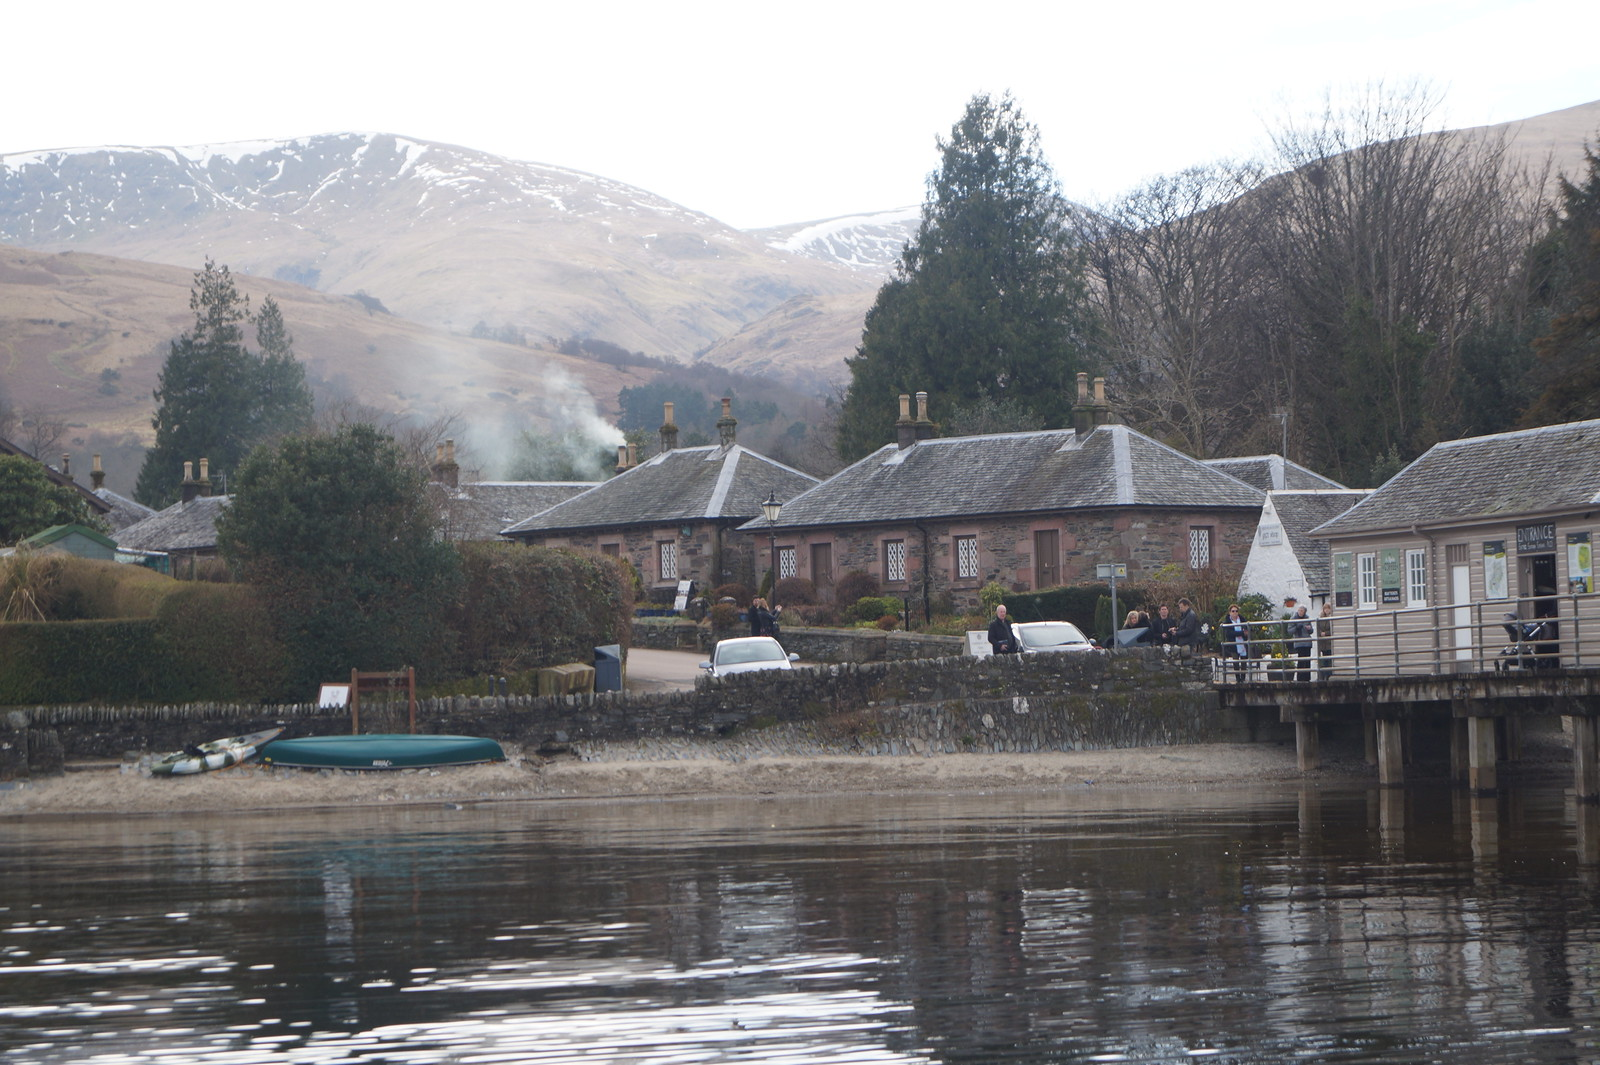 The boat dock and village of Luss, Scotland